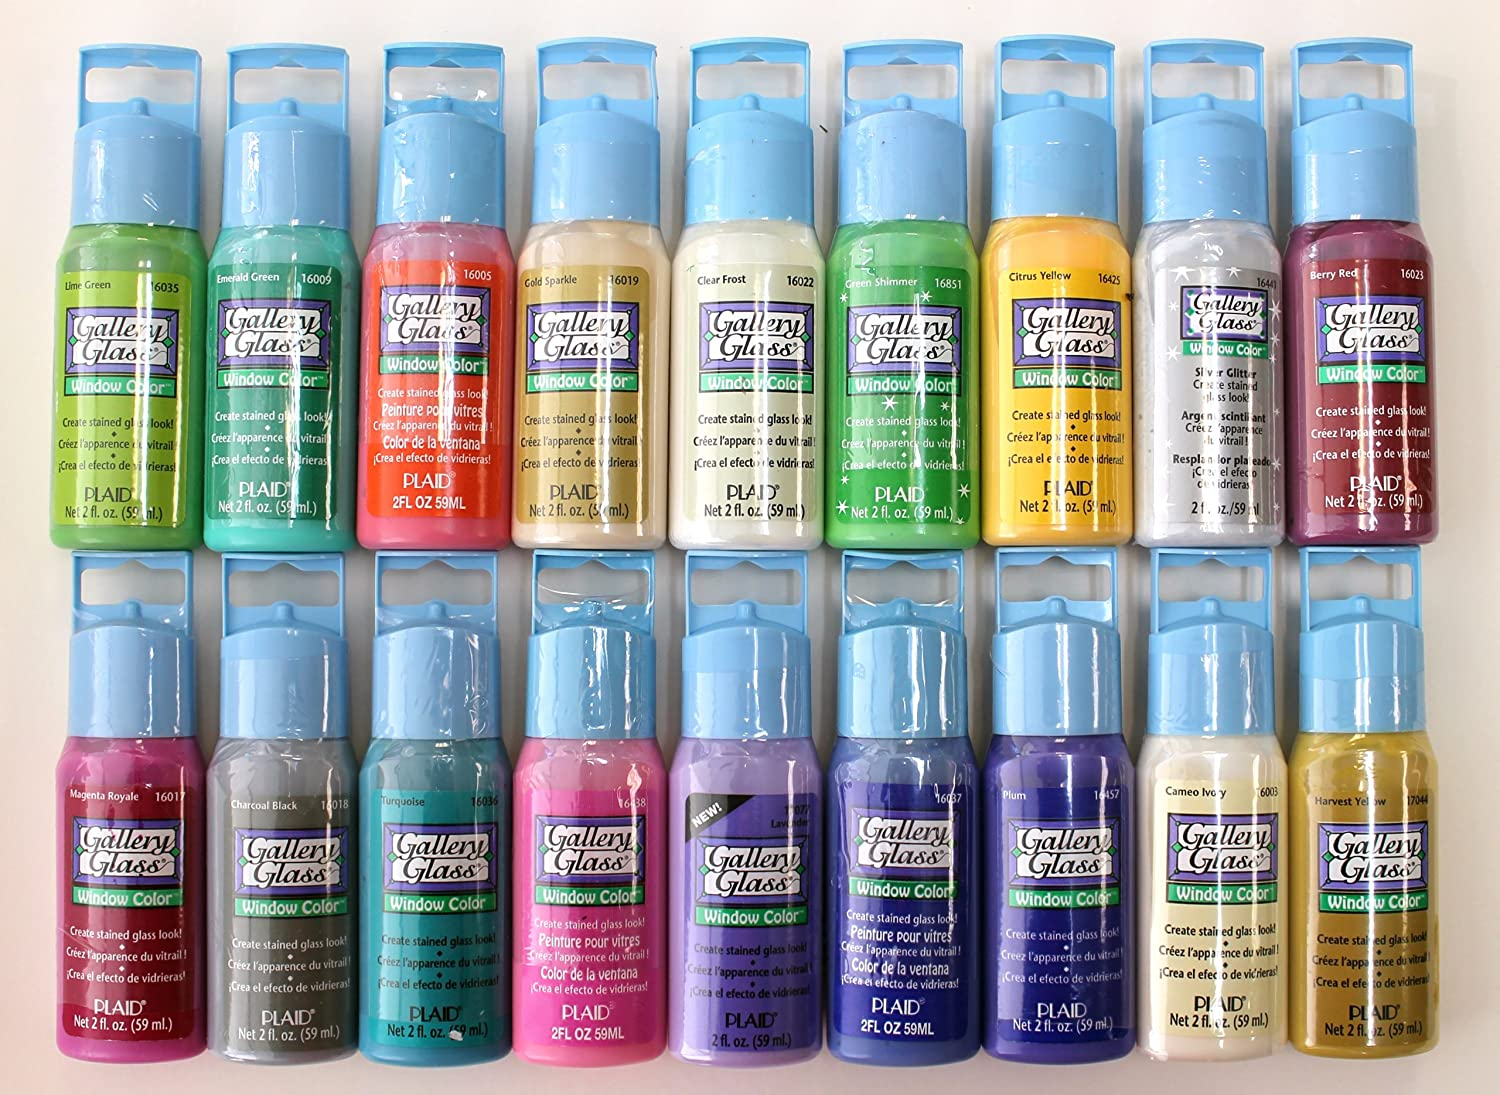 plaid promoggii gallery glass acrylic paint 2 ounce best